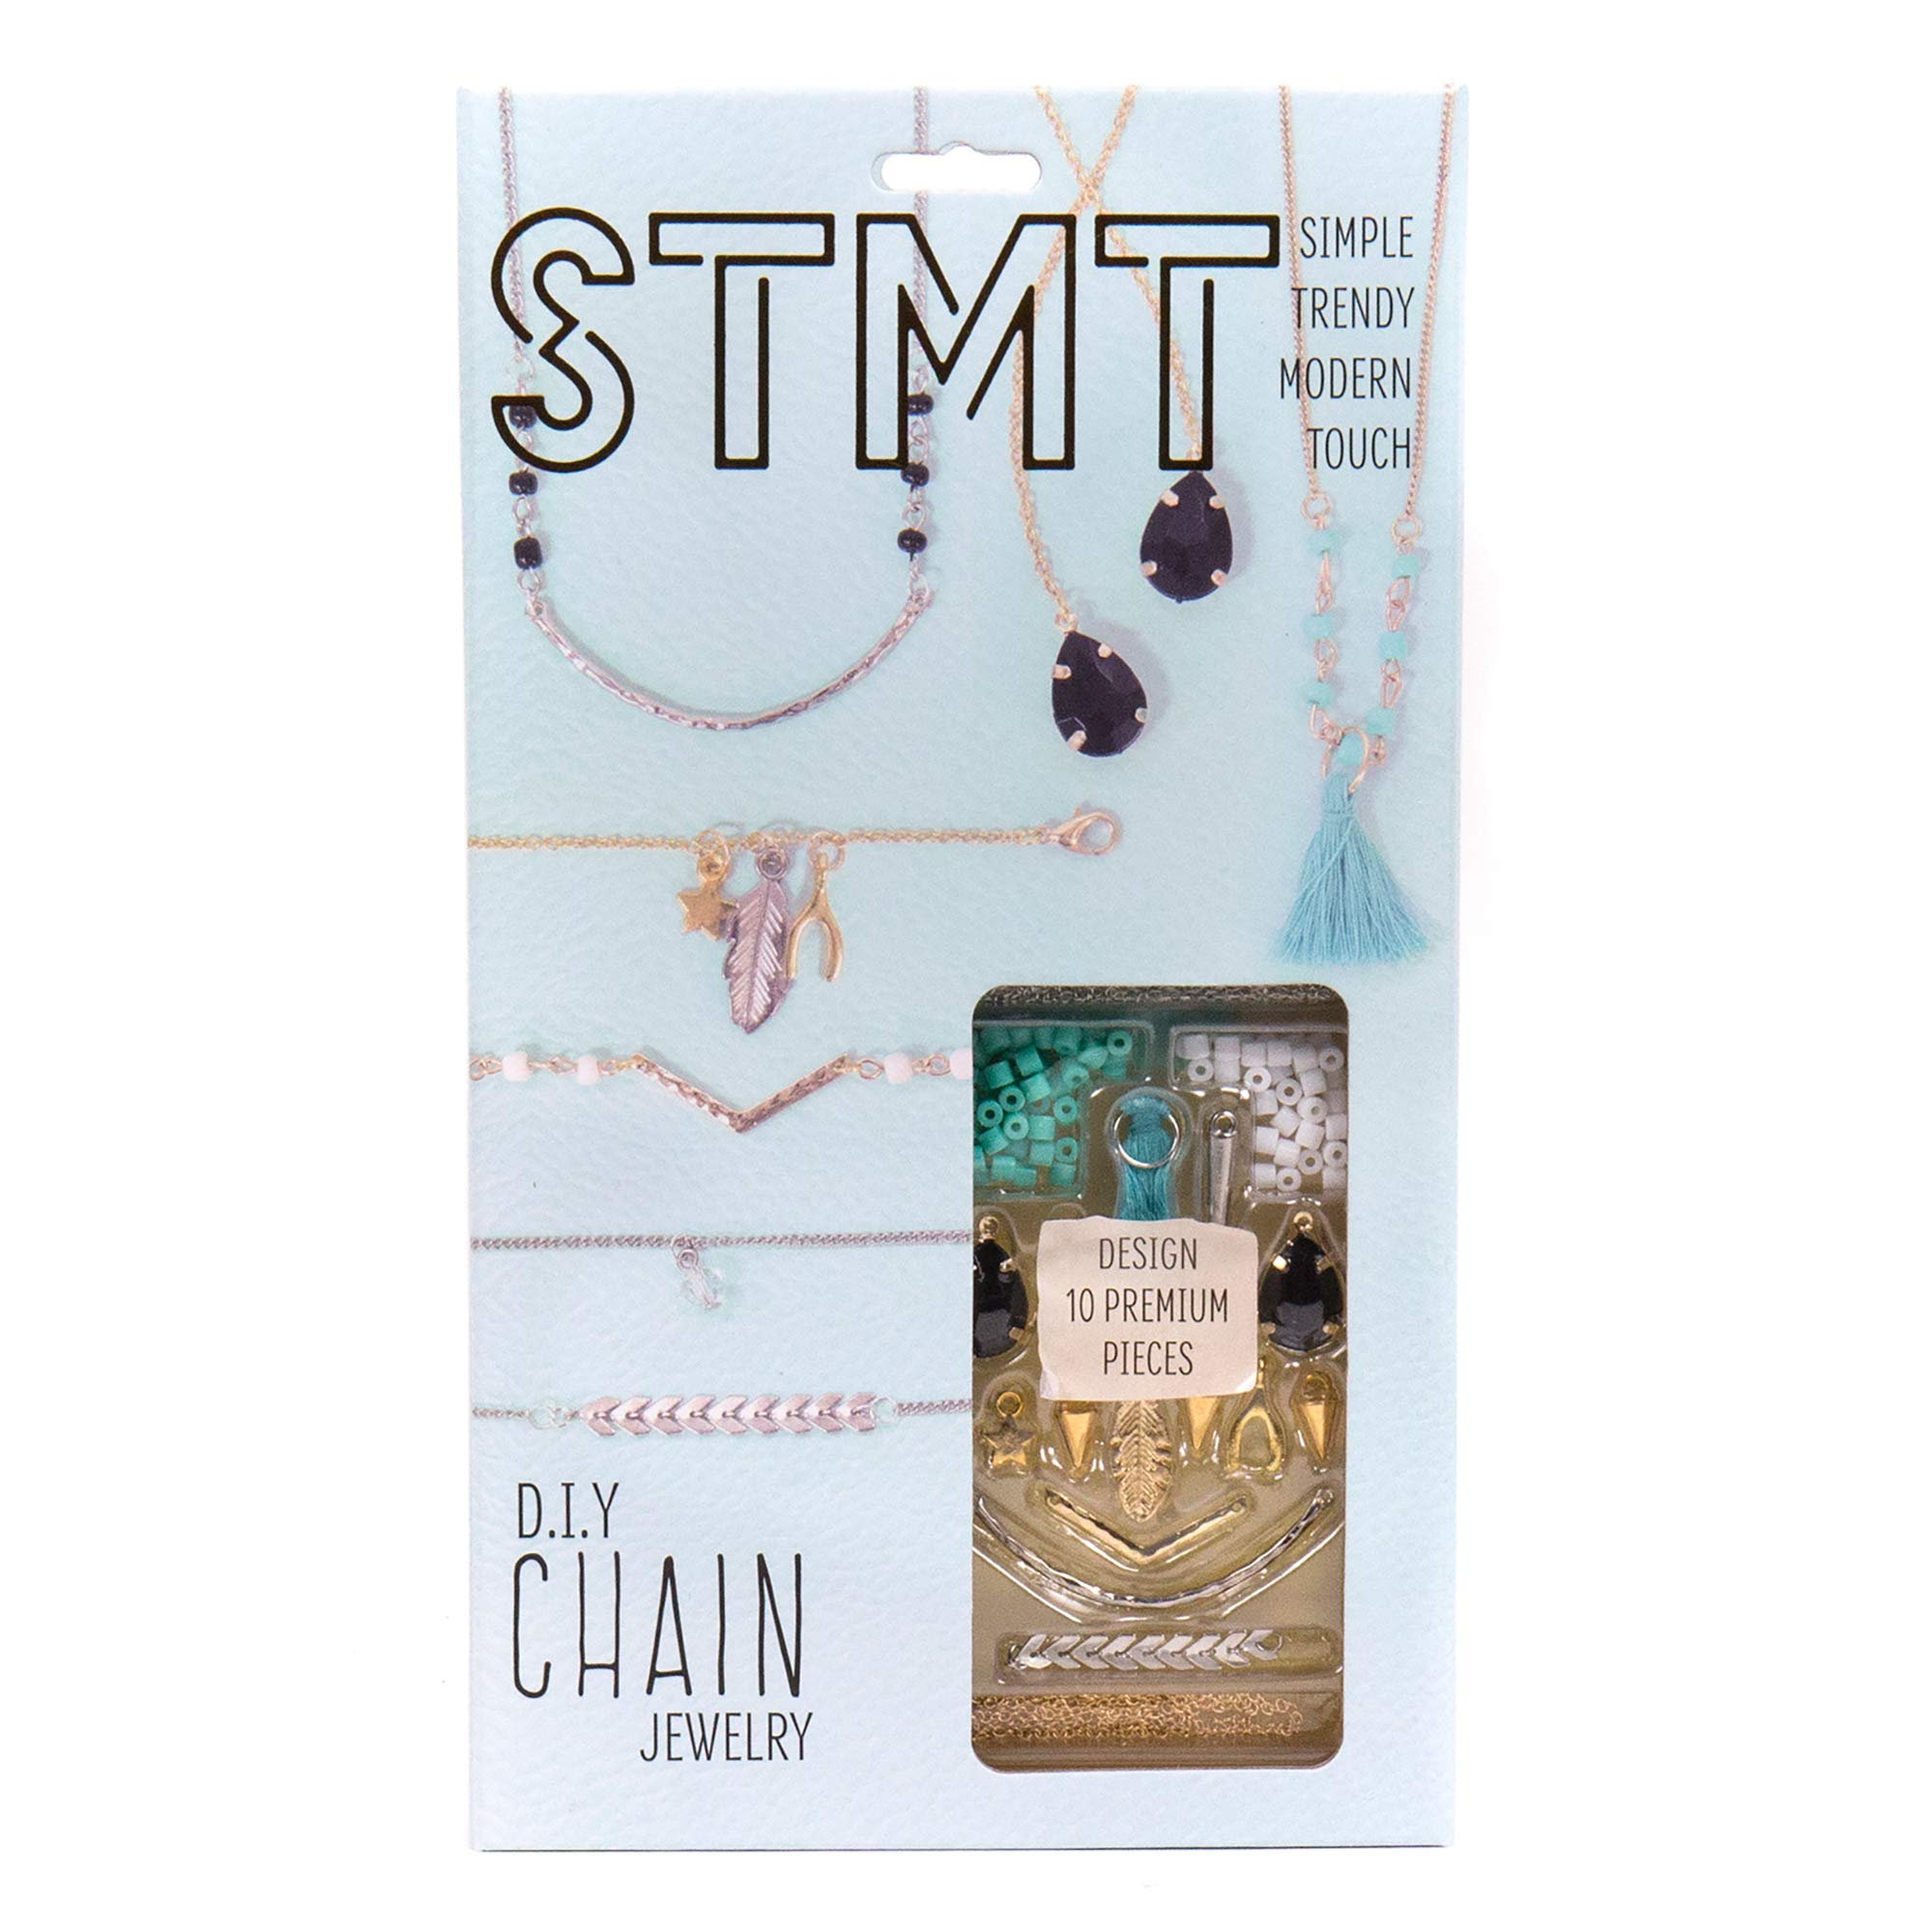 STMT DIY Chain Jewelry by Horizon Group USA, Design Upto 10Piece of Personalized Jewelry, Includes Trendy Charms, Chains, Tassels, Gemstones, Beads & More, Gold, Blue, Black & Silver by STMT